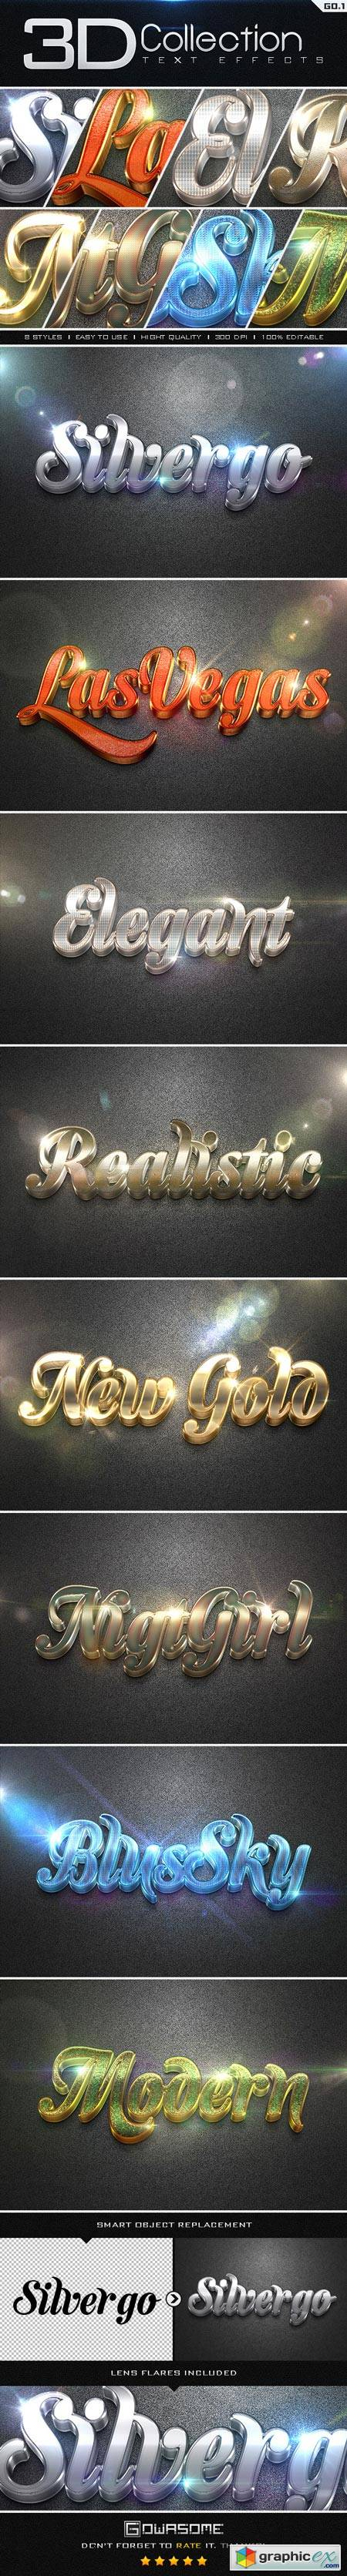 3D Collection Text Effects GO.1 8842156